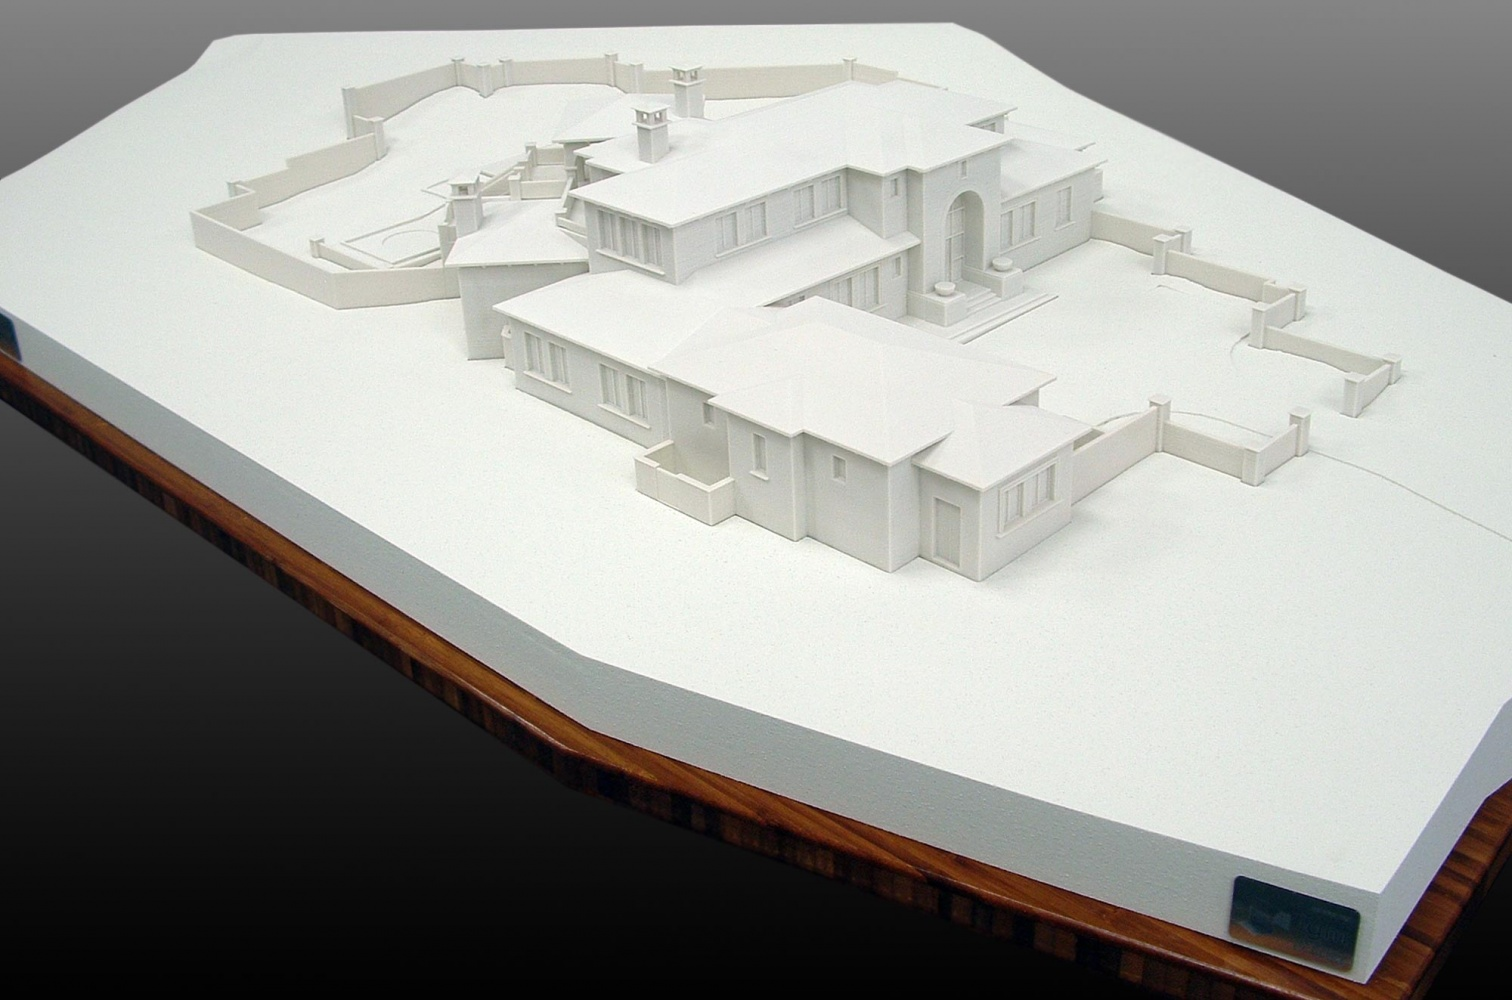 3D Printed Building on White Terrain Form